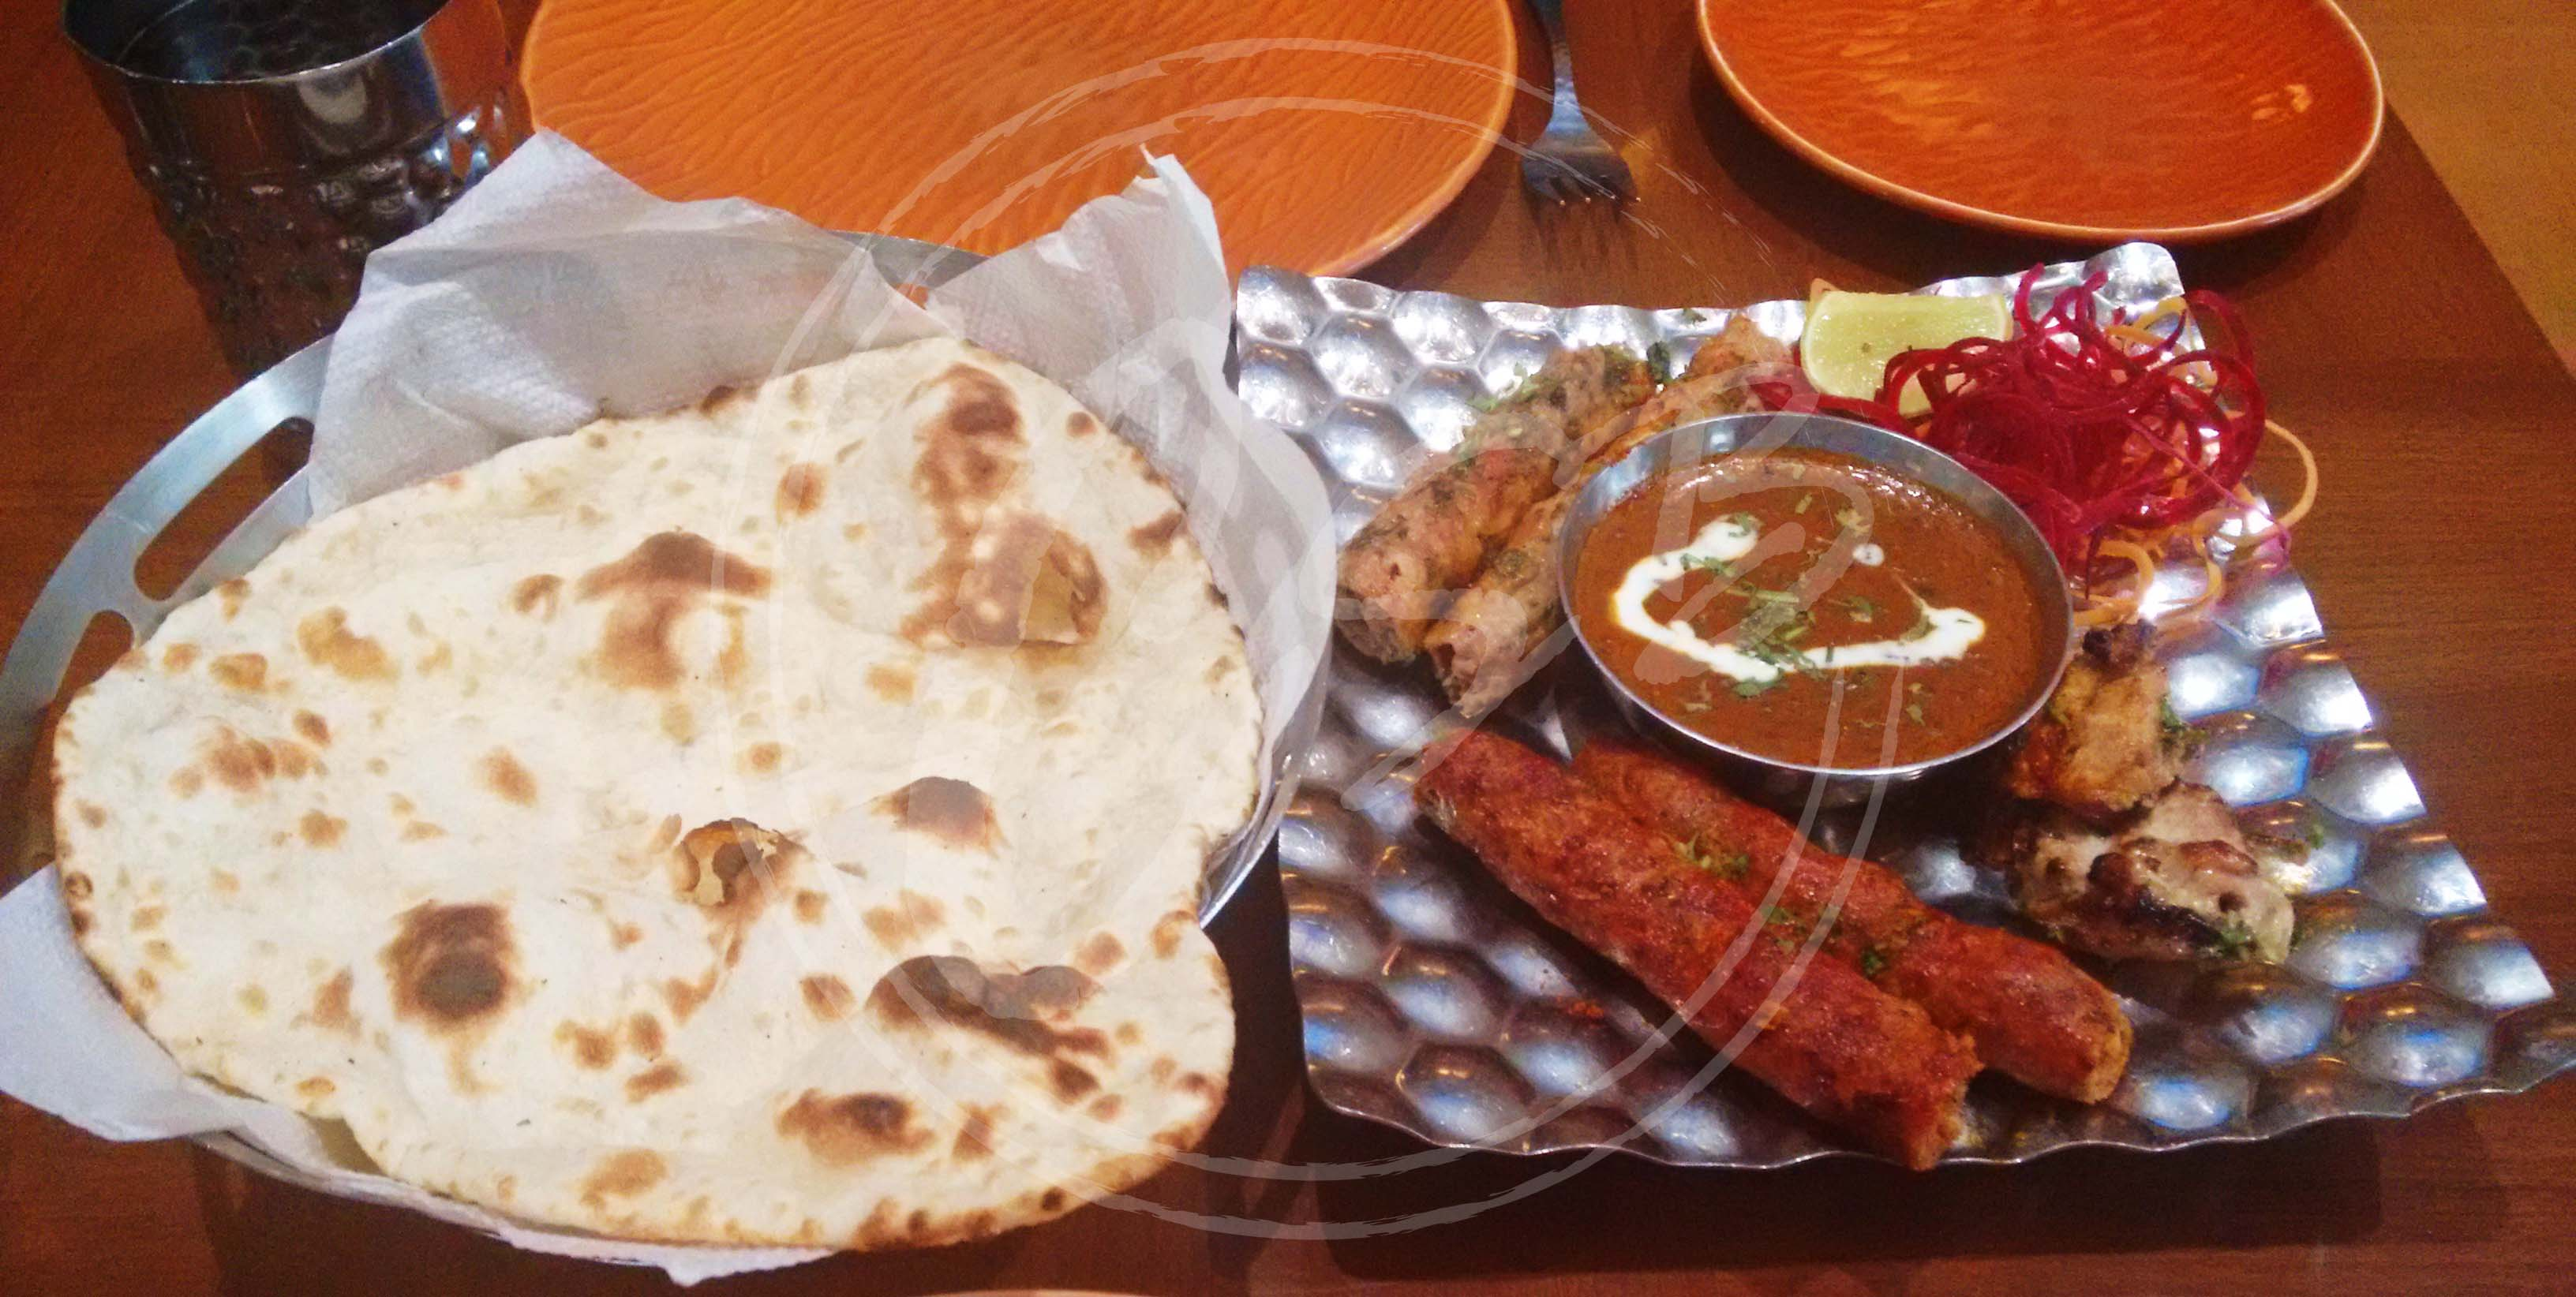 The kebab platter at Punjabi by nature quickie with peshawari kebab, chicken seekh kebab and reshmi seekh kebab complete with a bowl of creamy dal makhni and naan.